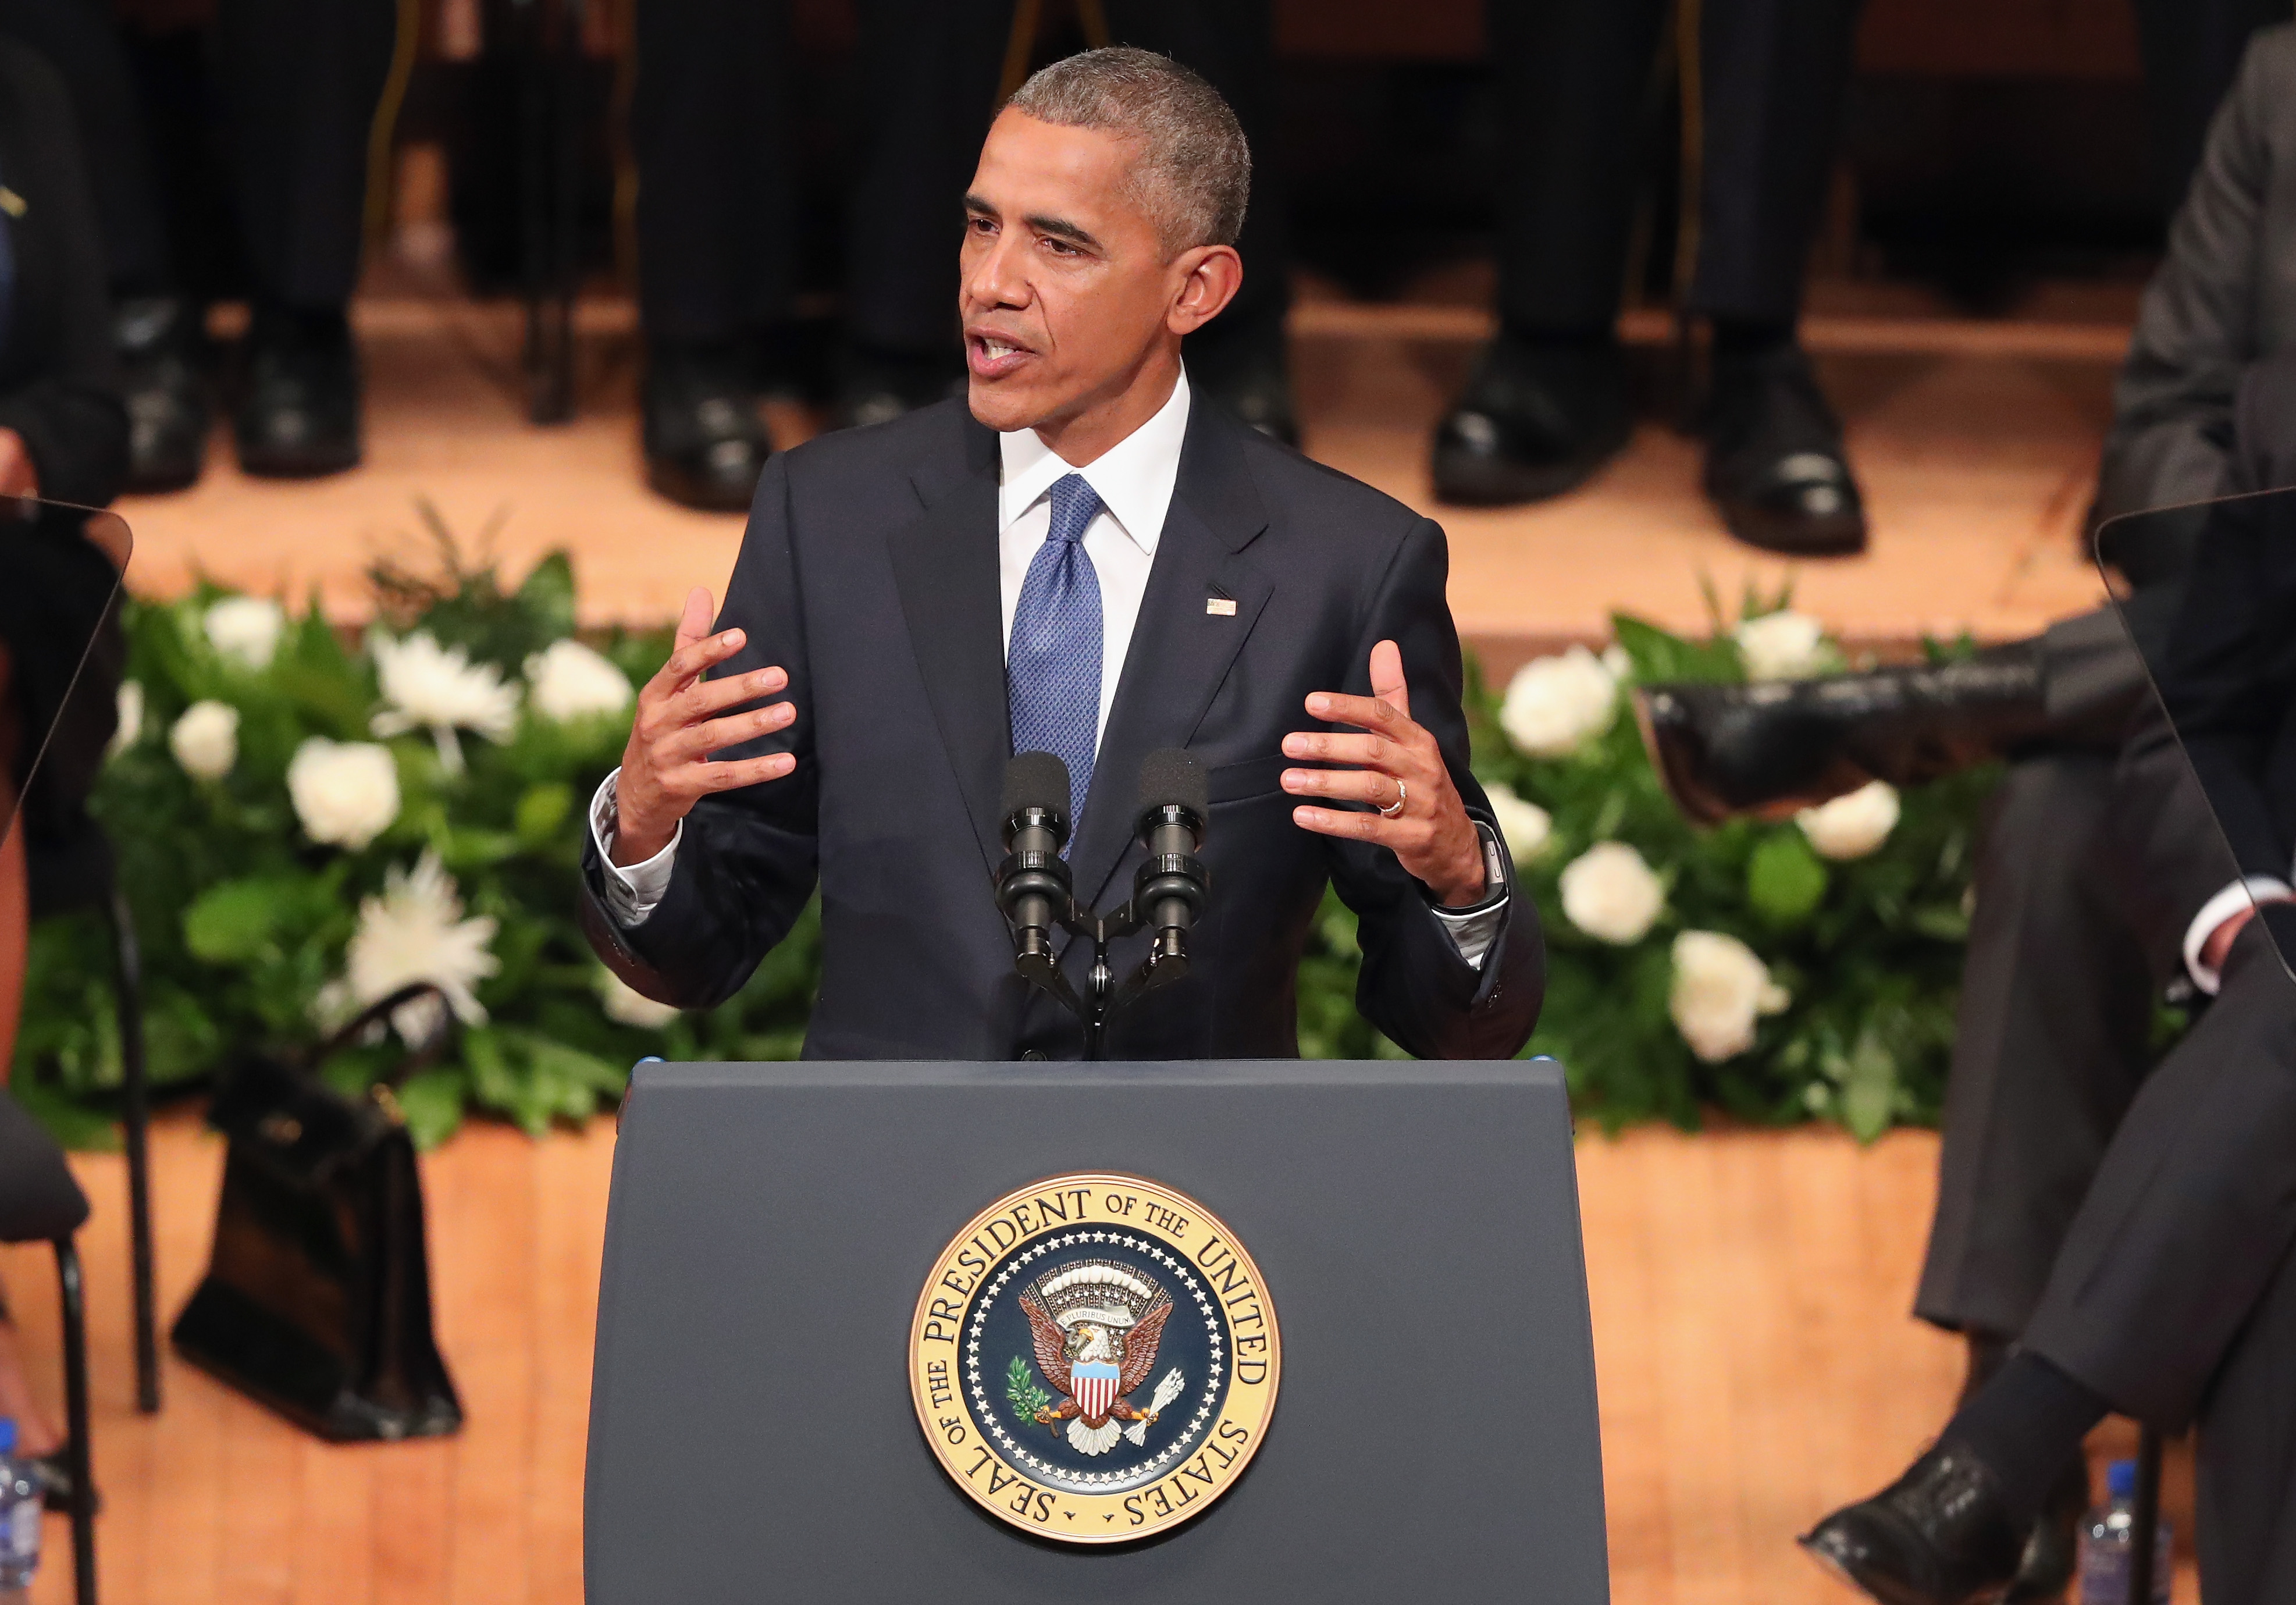 Dallas Shooting President Obama Speaks At Memorial Service Time